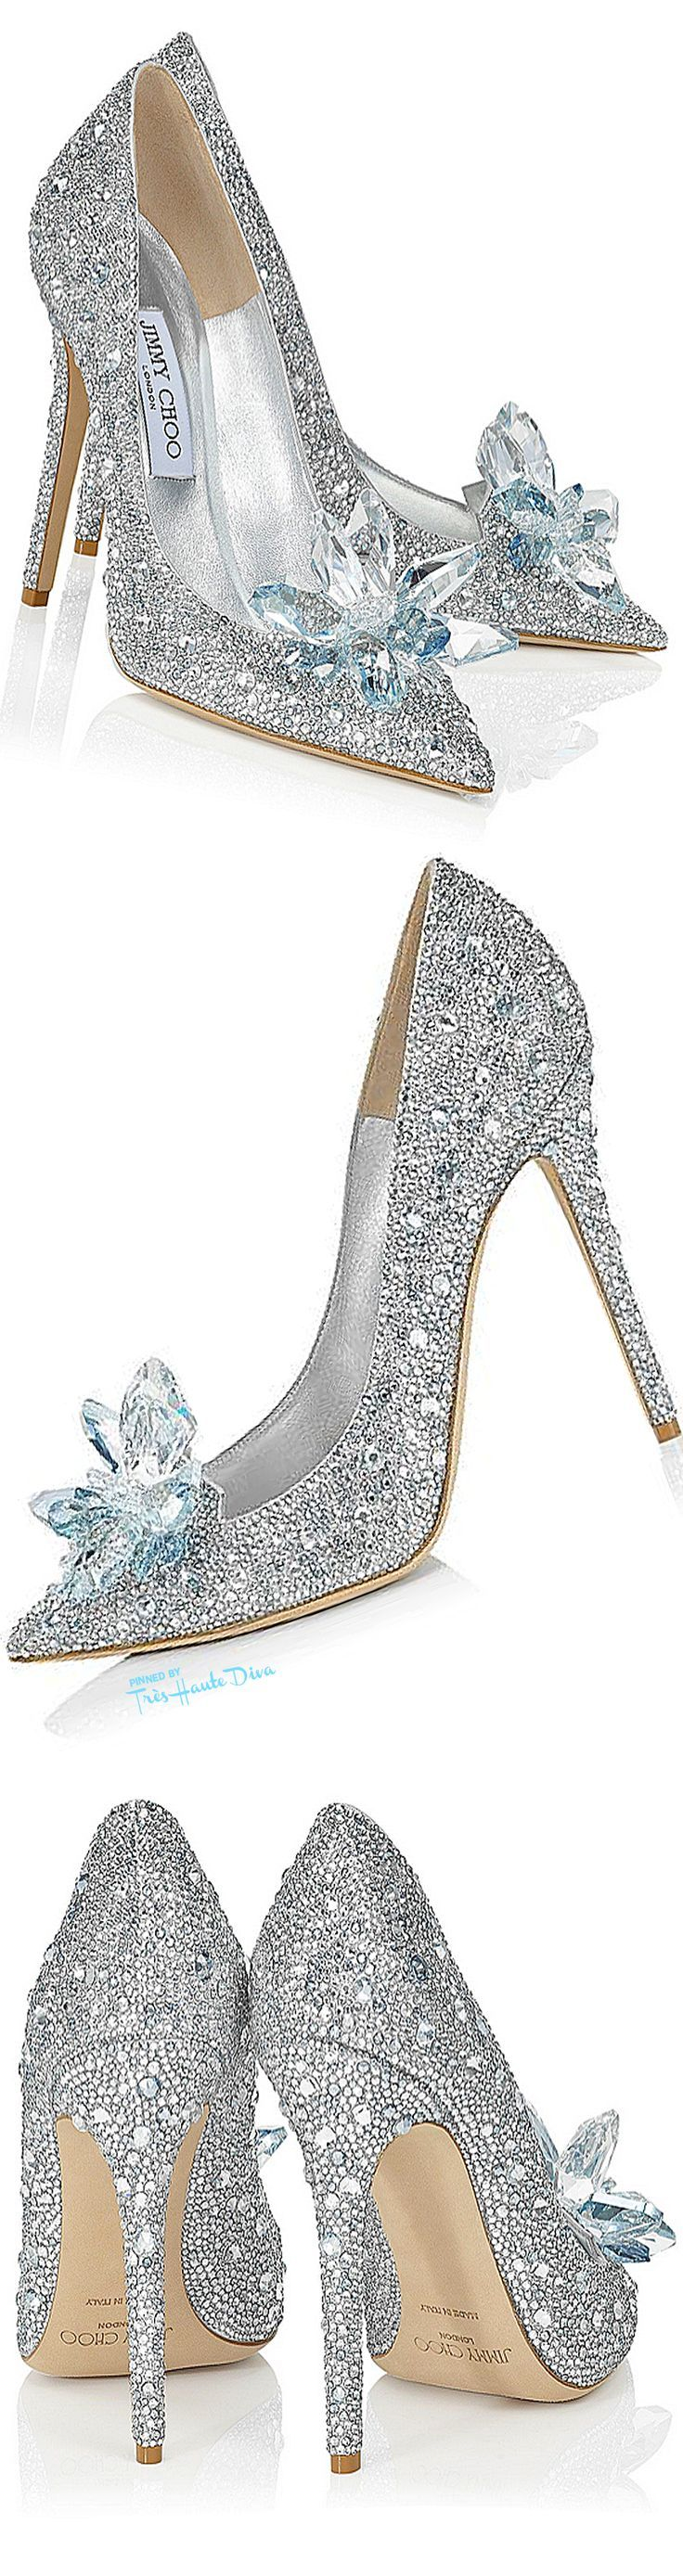 Tendance Chaussures   Jimmy Choo Cinderella Pointed toe court heels  fully embellished with crystals #gla